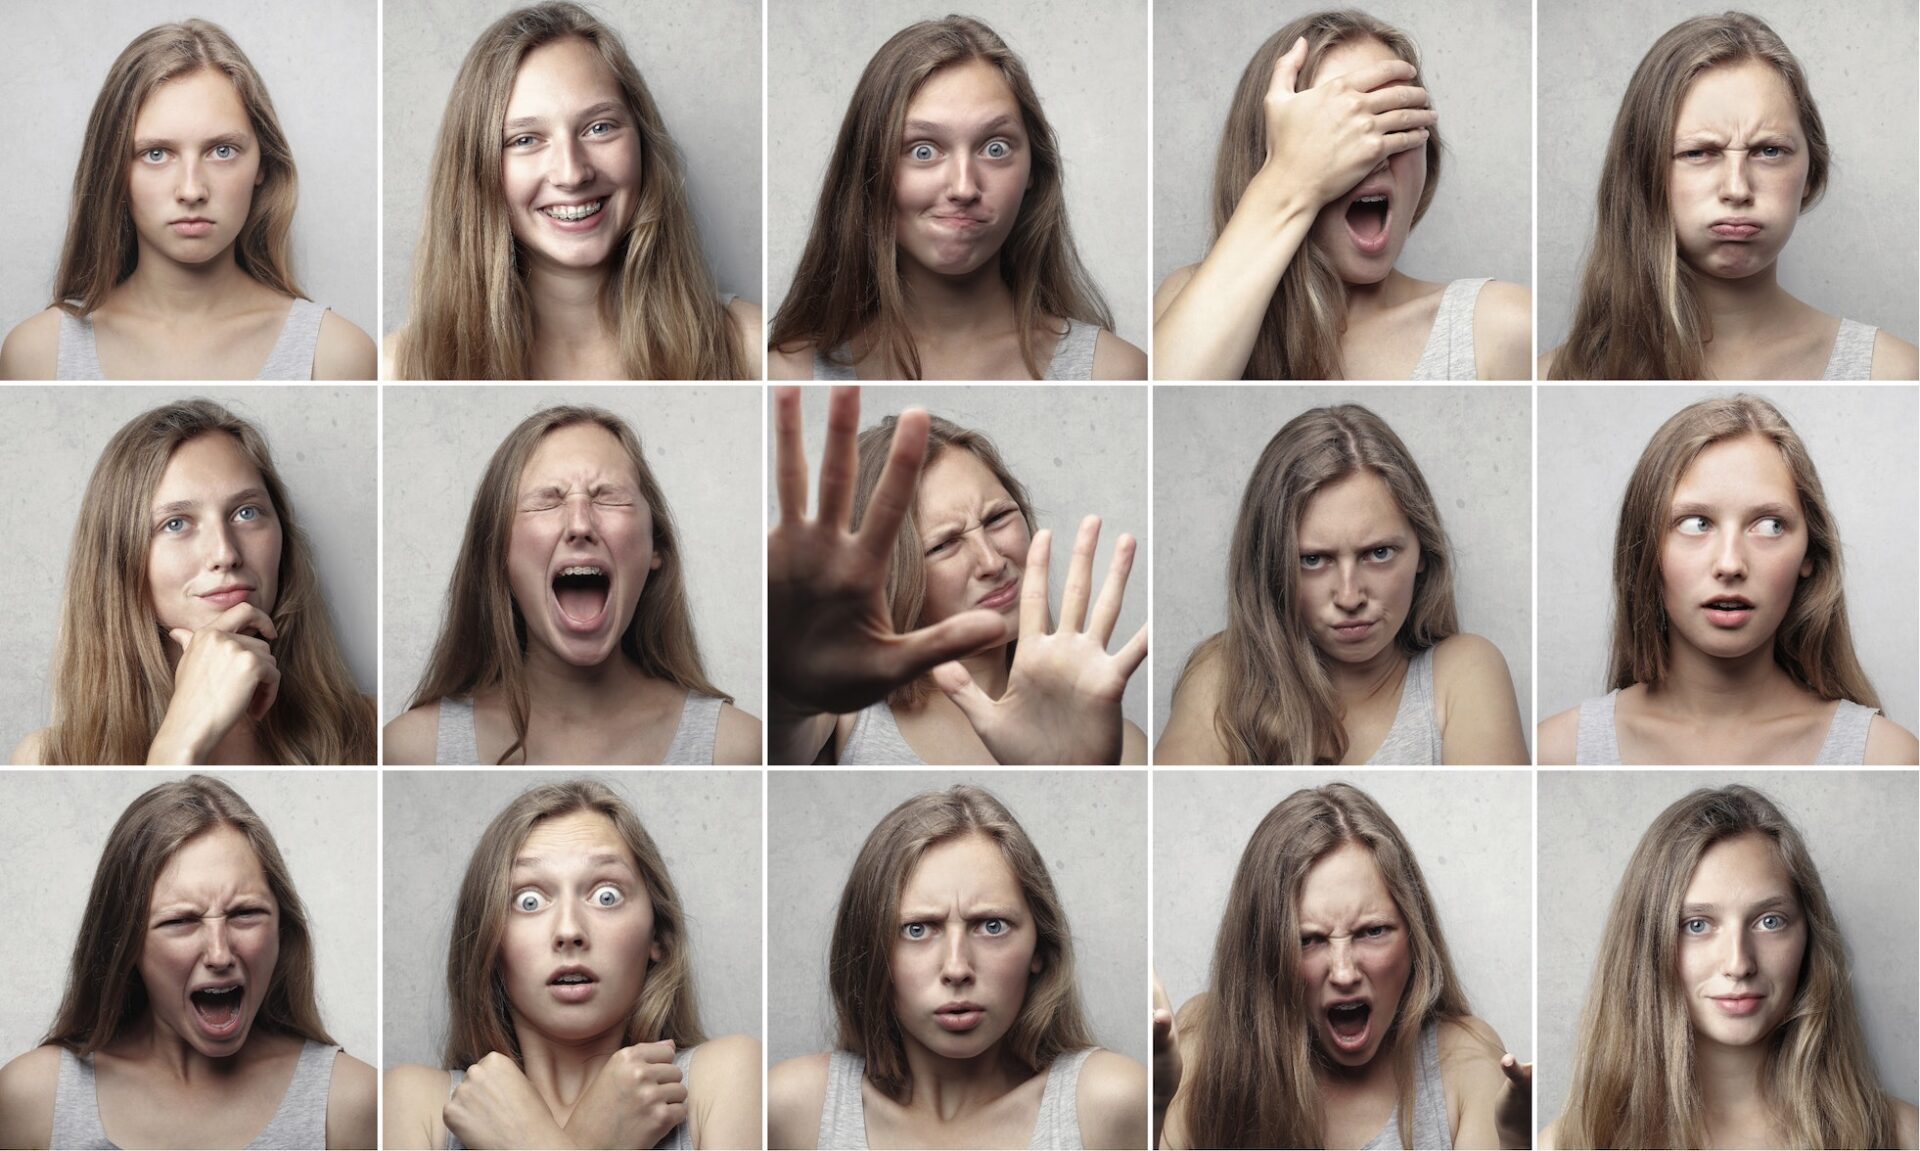 girl in series of small photos expressing different emotions